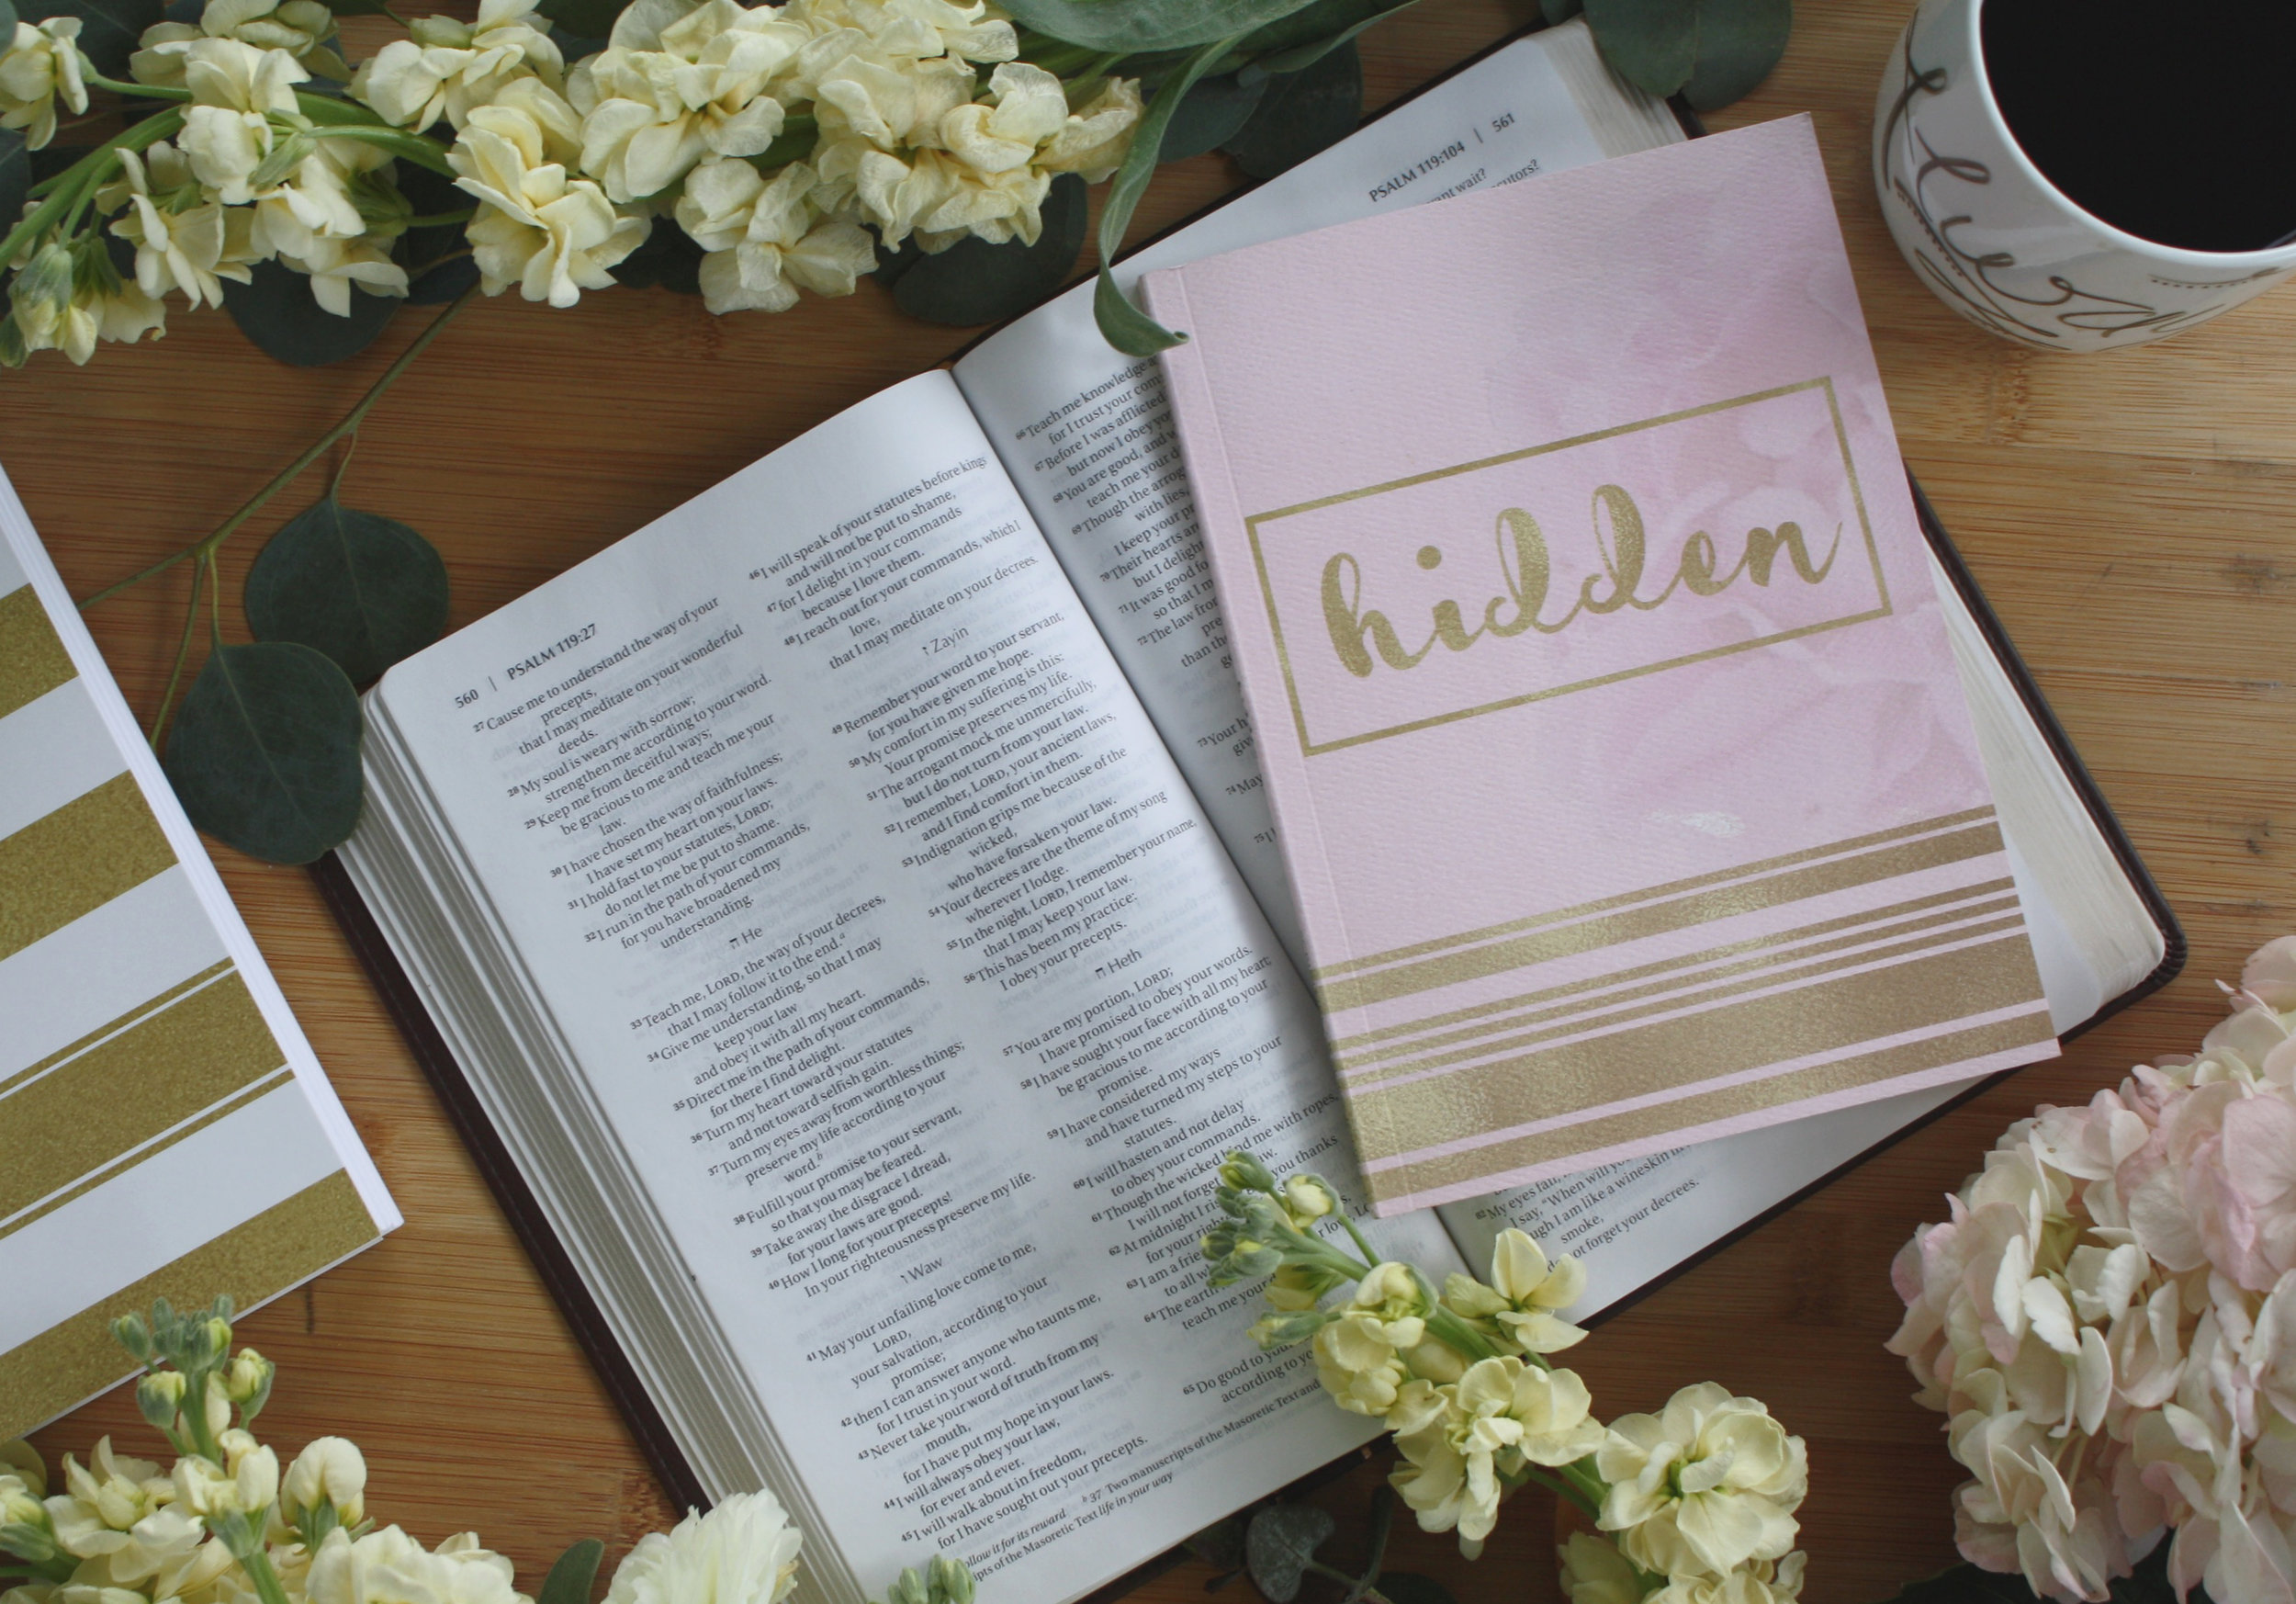 """{The """" Hidden: Scripture Memory Journal """" is available at the    To Choose Joy Shop   }"""